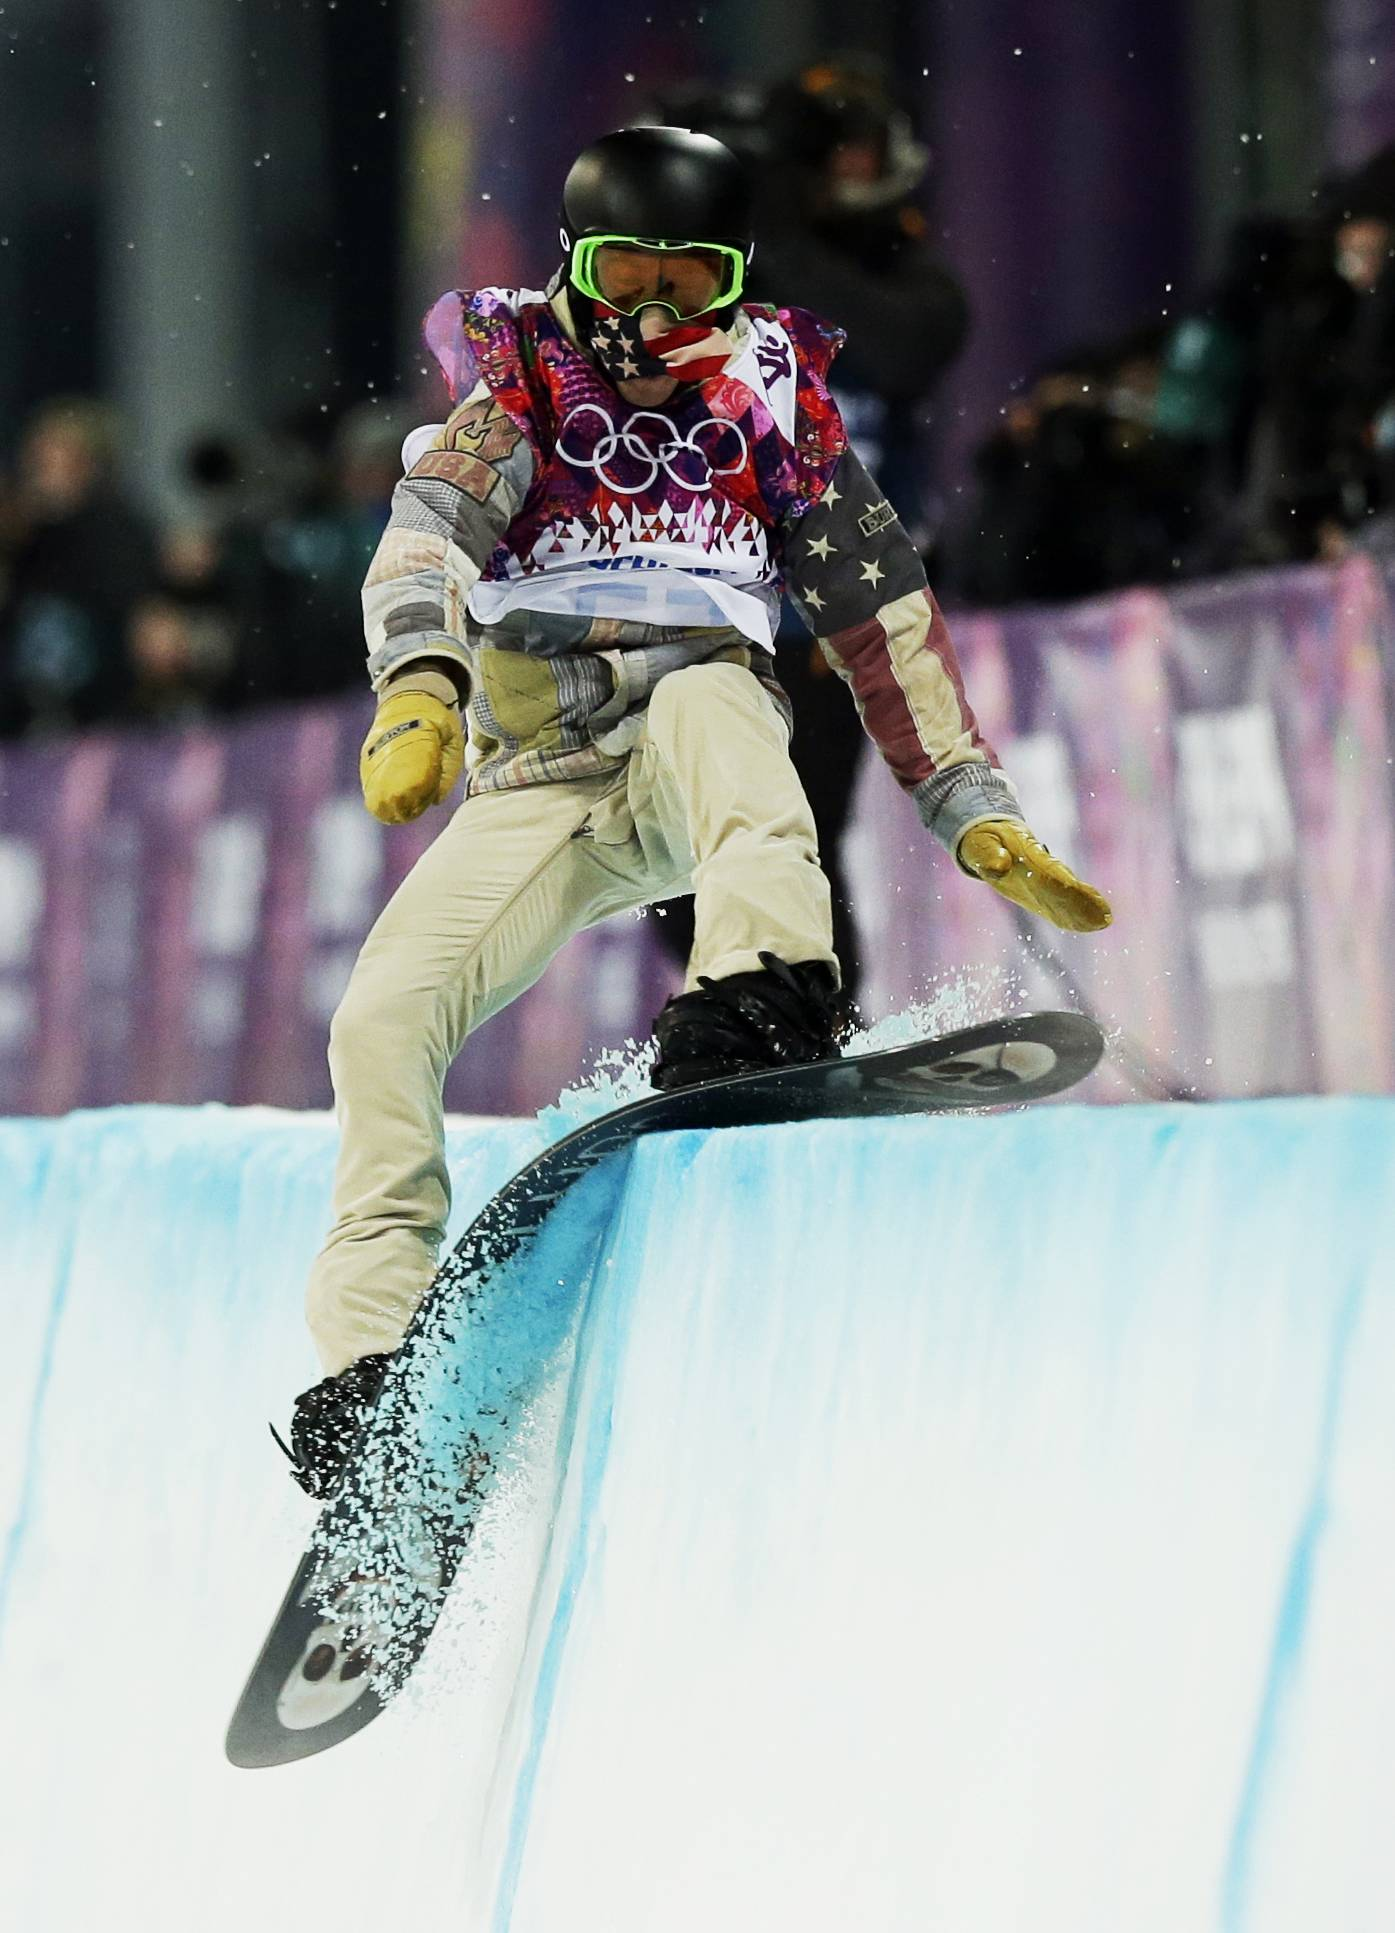 Shaun White, of the United States, hits the edge of the half pipe during the men's snowboard halfpipe final at the Rosa Khutor Extreme Park, at the 2014 Winter Olympics, Tuesday, Feb. 11, 2014, in Krasnaya Polyana, Russia.